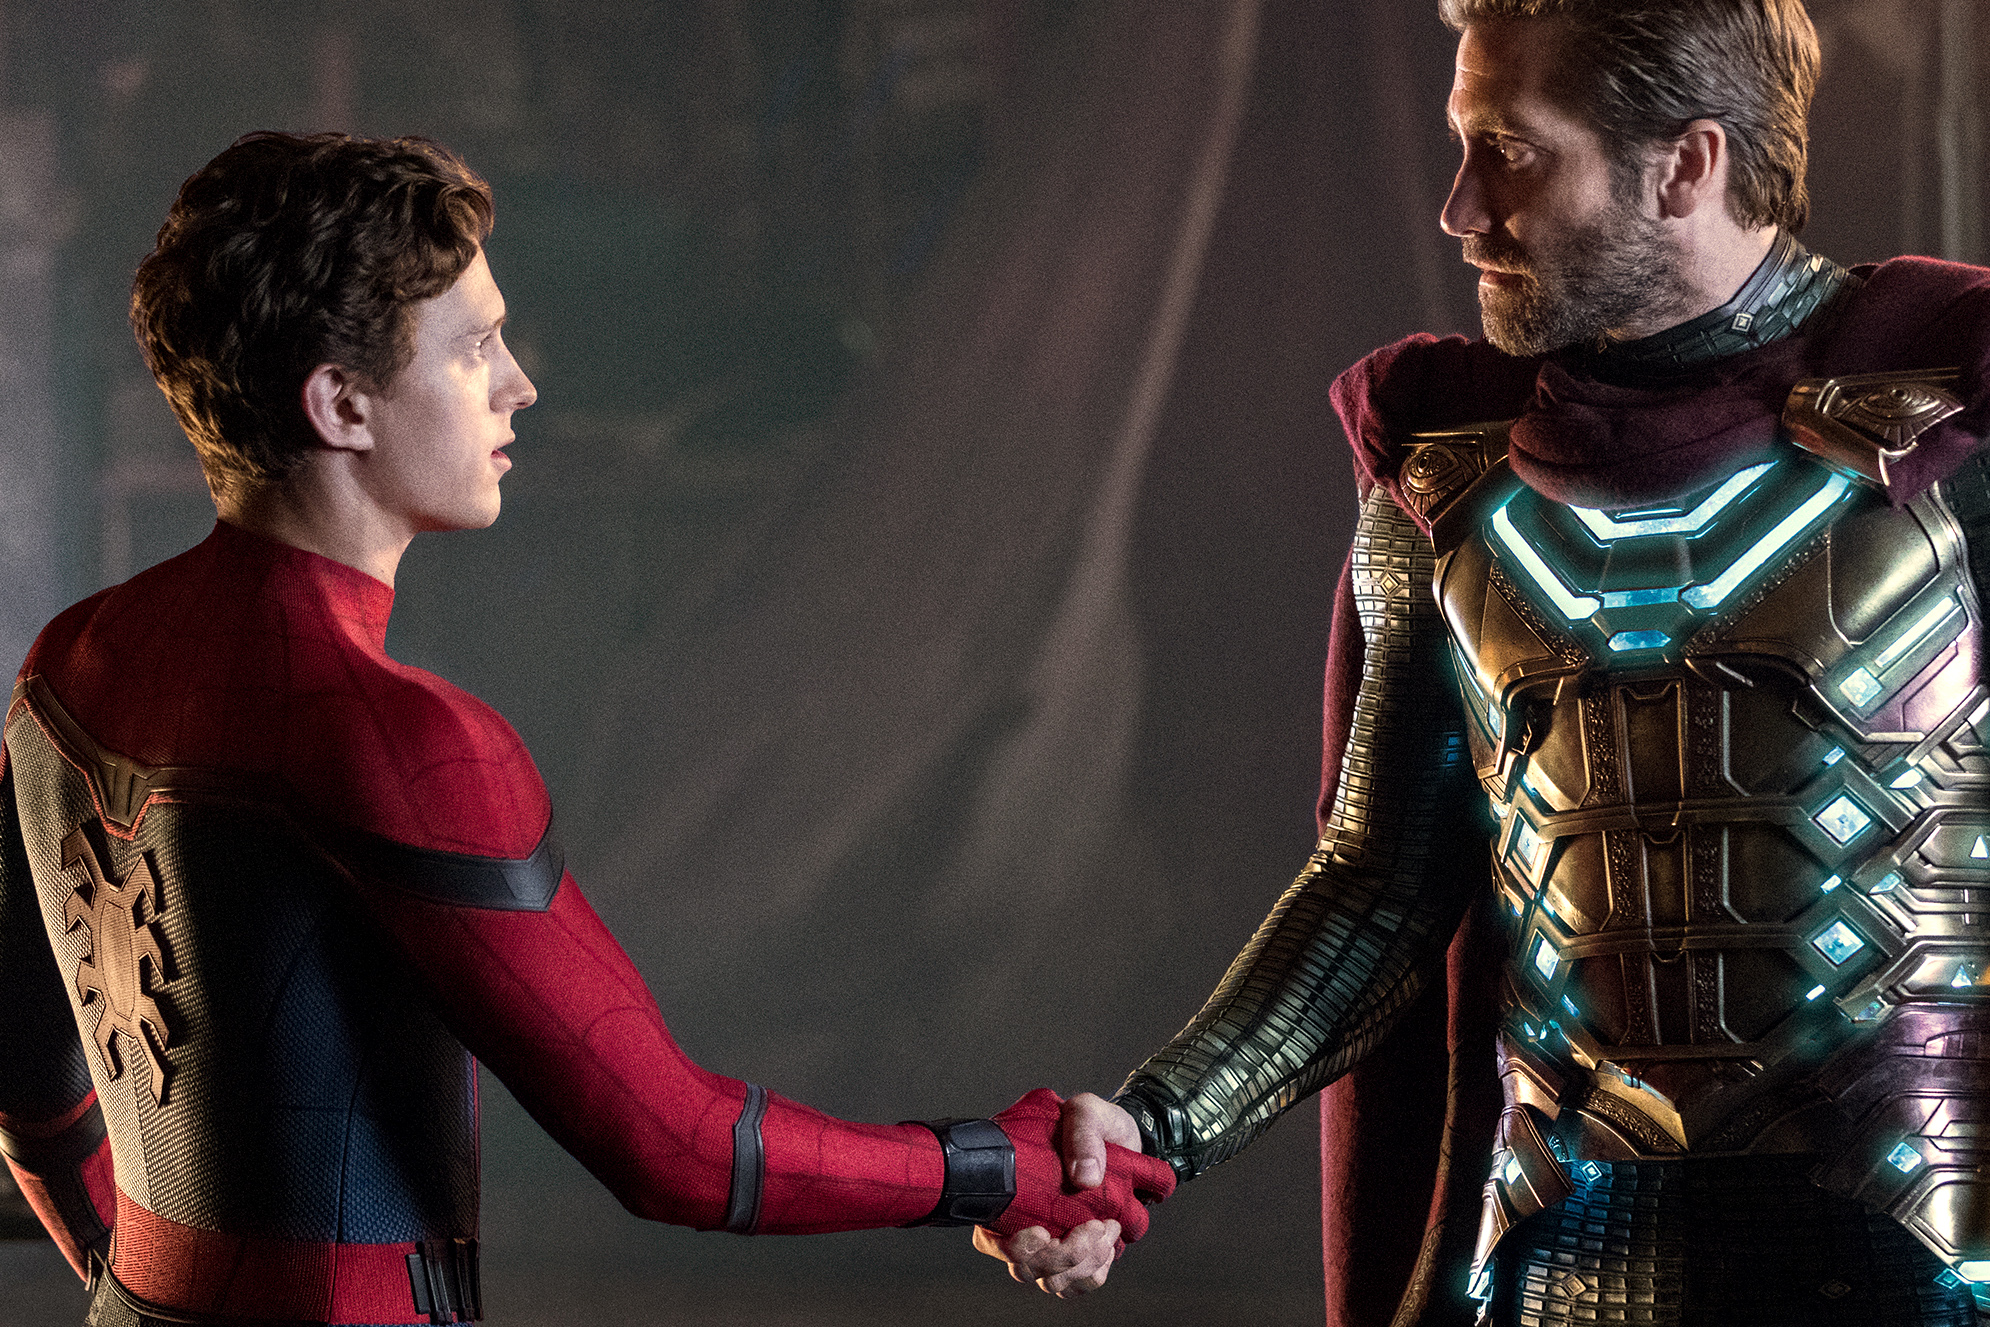 Tom Holland and Jake Gyllenhaal star in a scene from the movie